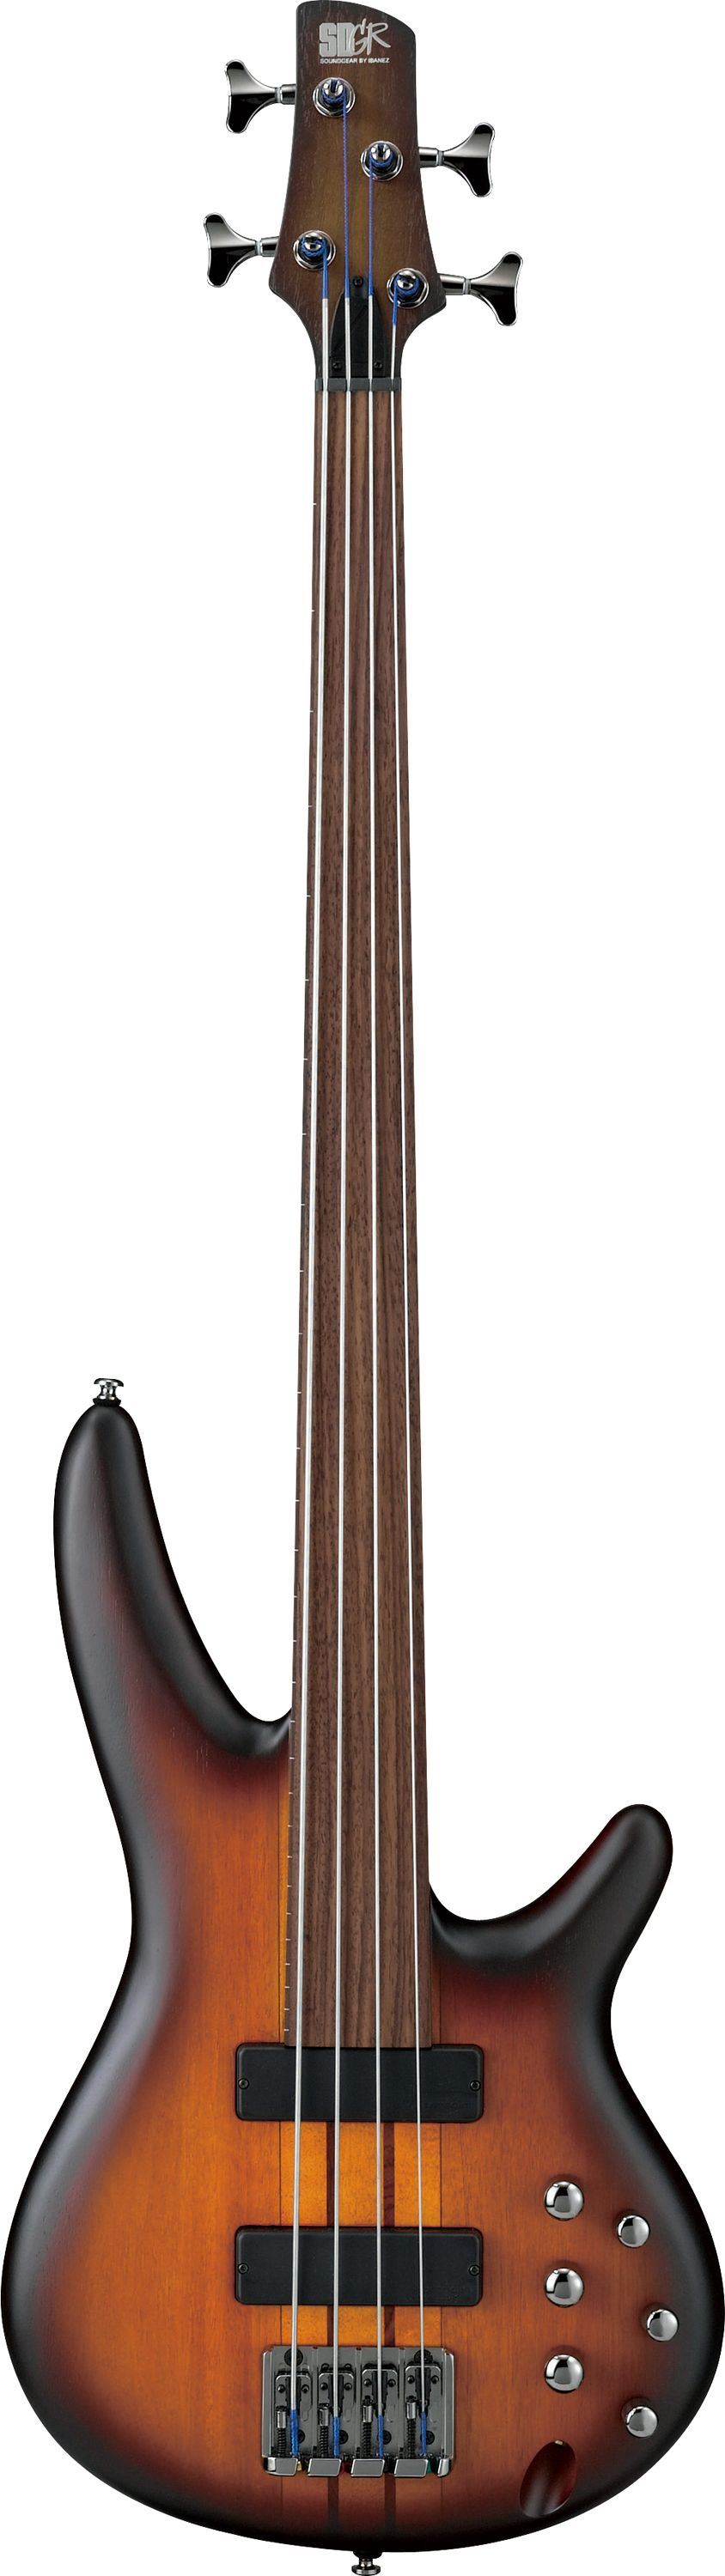 Ibanez SRF700BBF Workshop Fretless Bass Guitar Brown Burst Flat